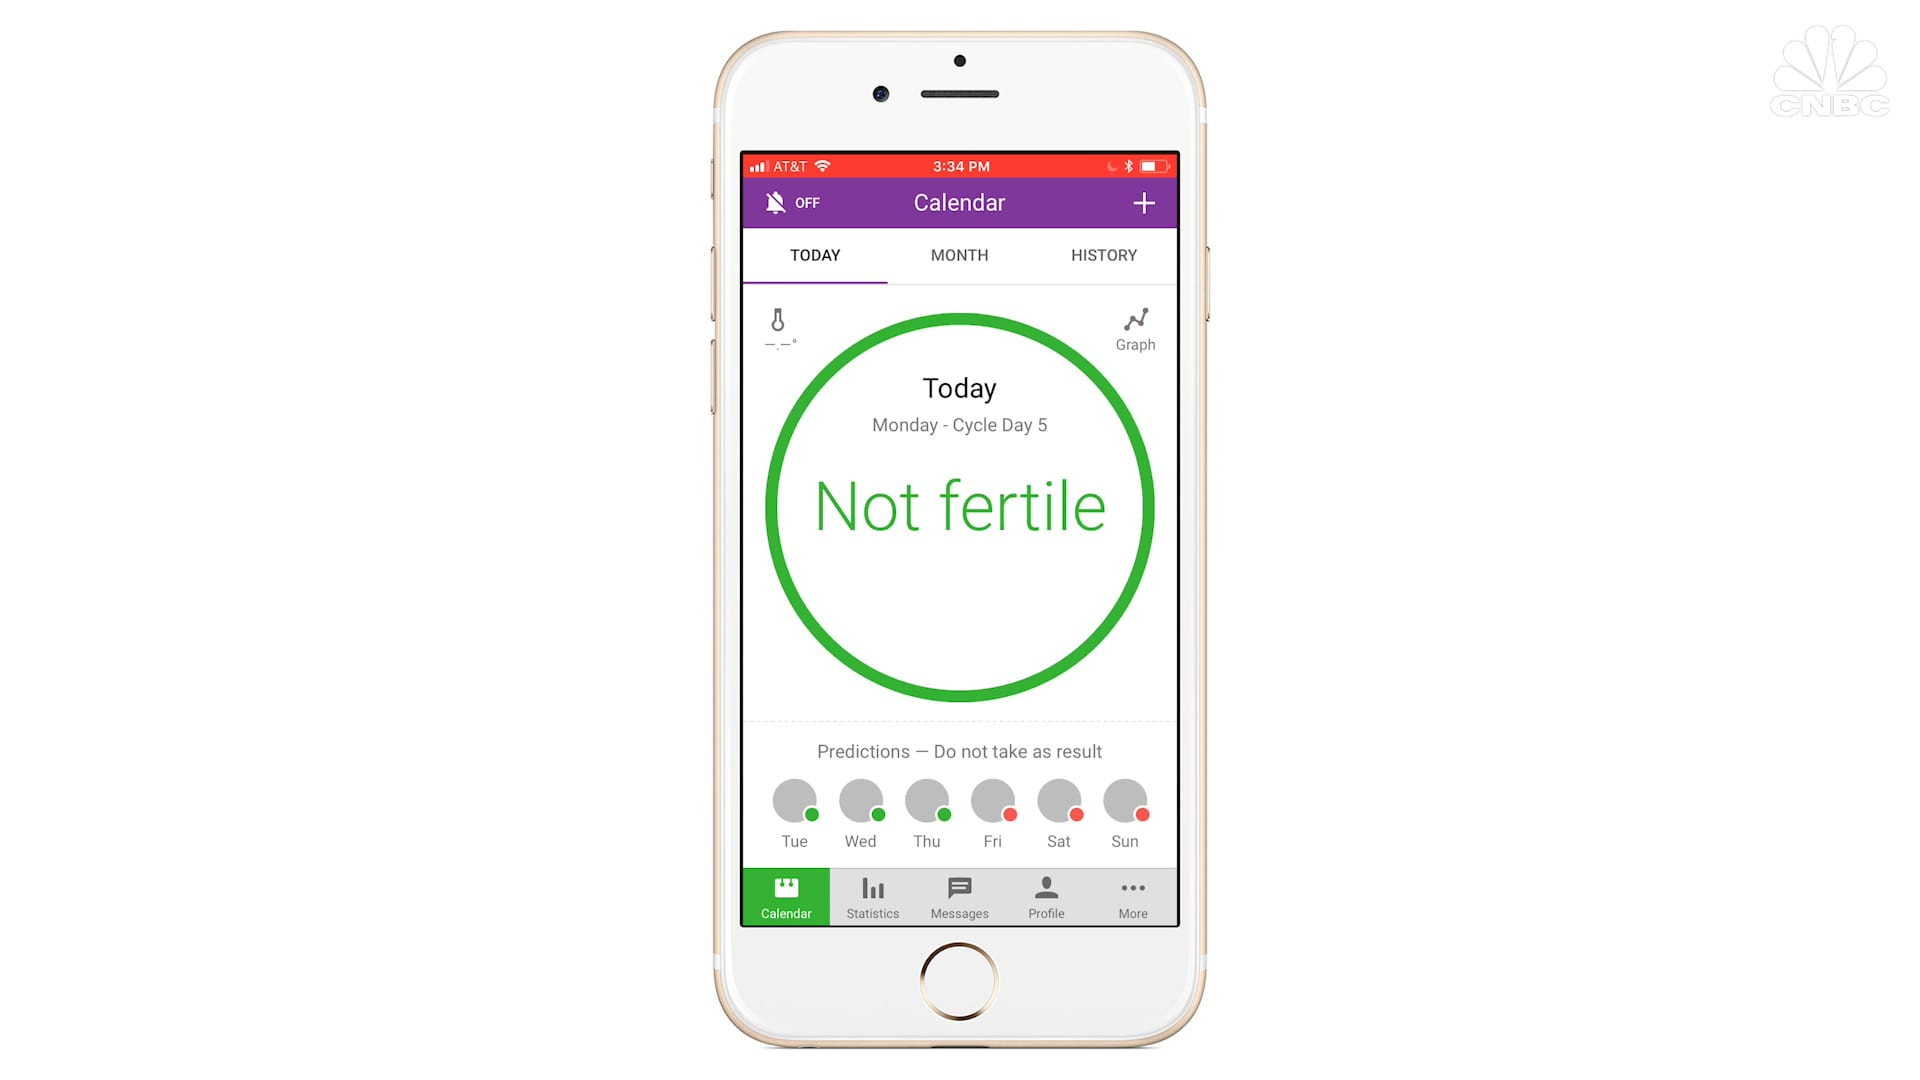 Fertility apps are one the rise and Natural Cycles is now